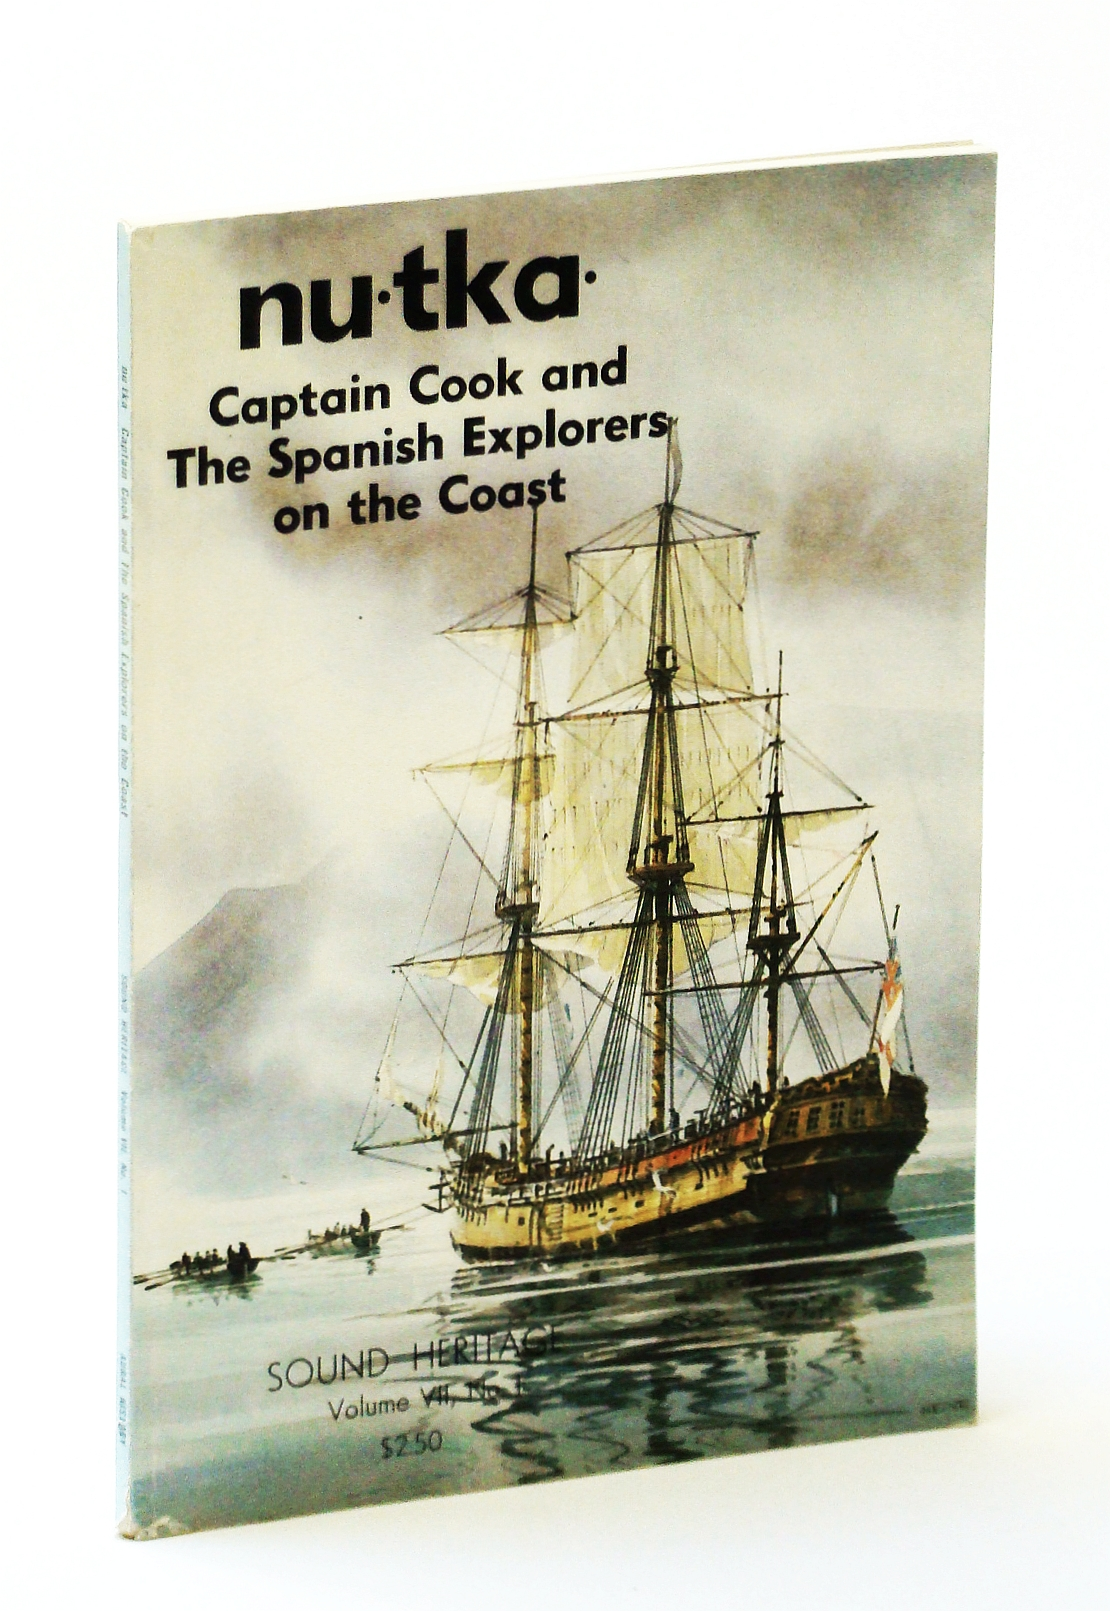 Image for Nu-tka : Captain Cook and the Spanish Explorers on the Coast : Sound Heritage Volume VII, Number 1